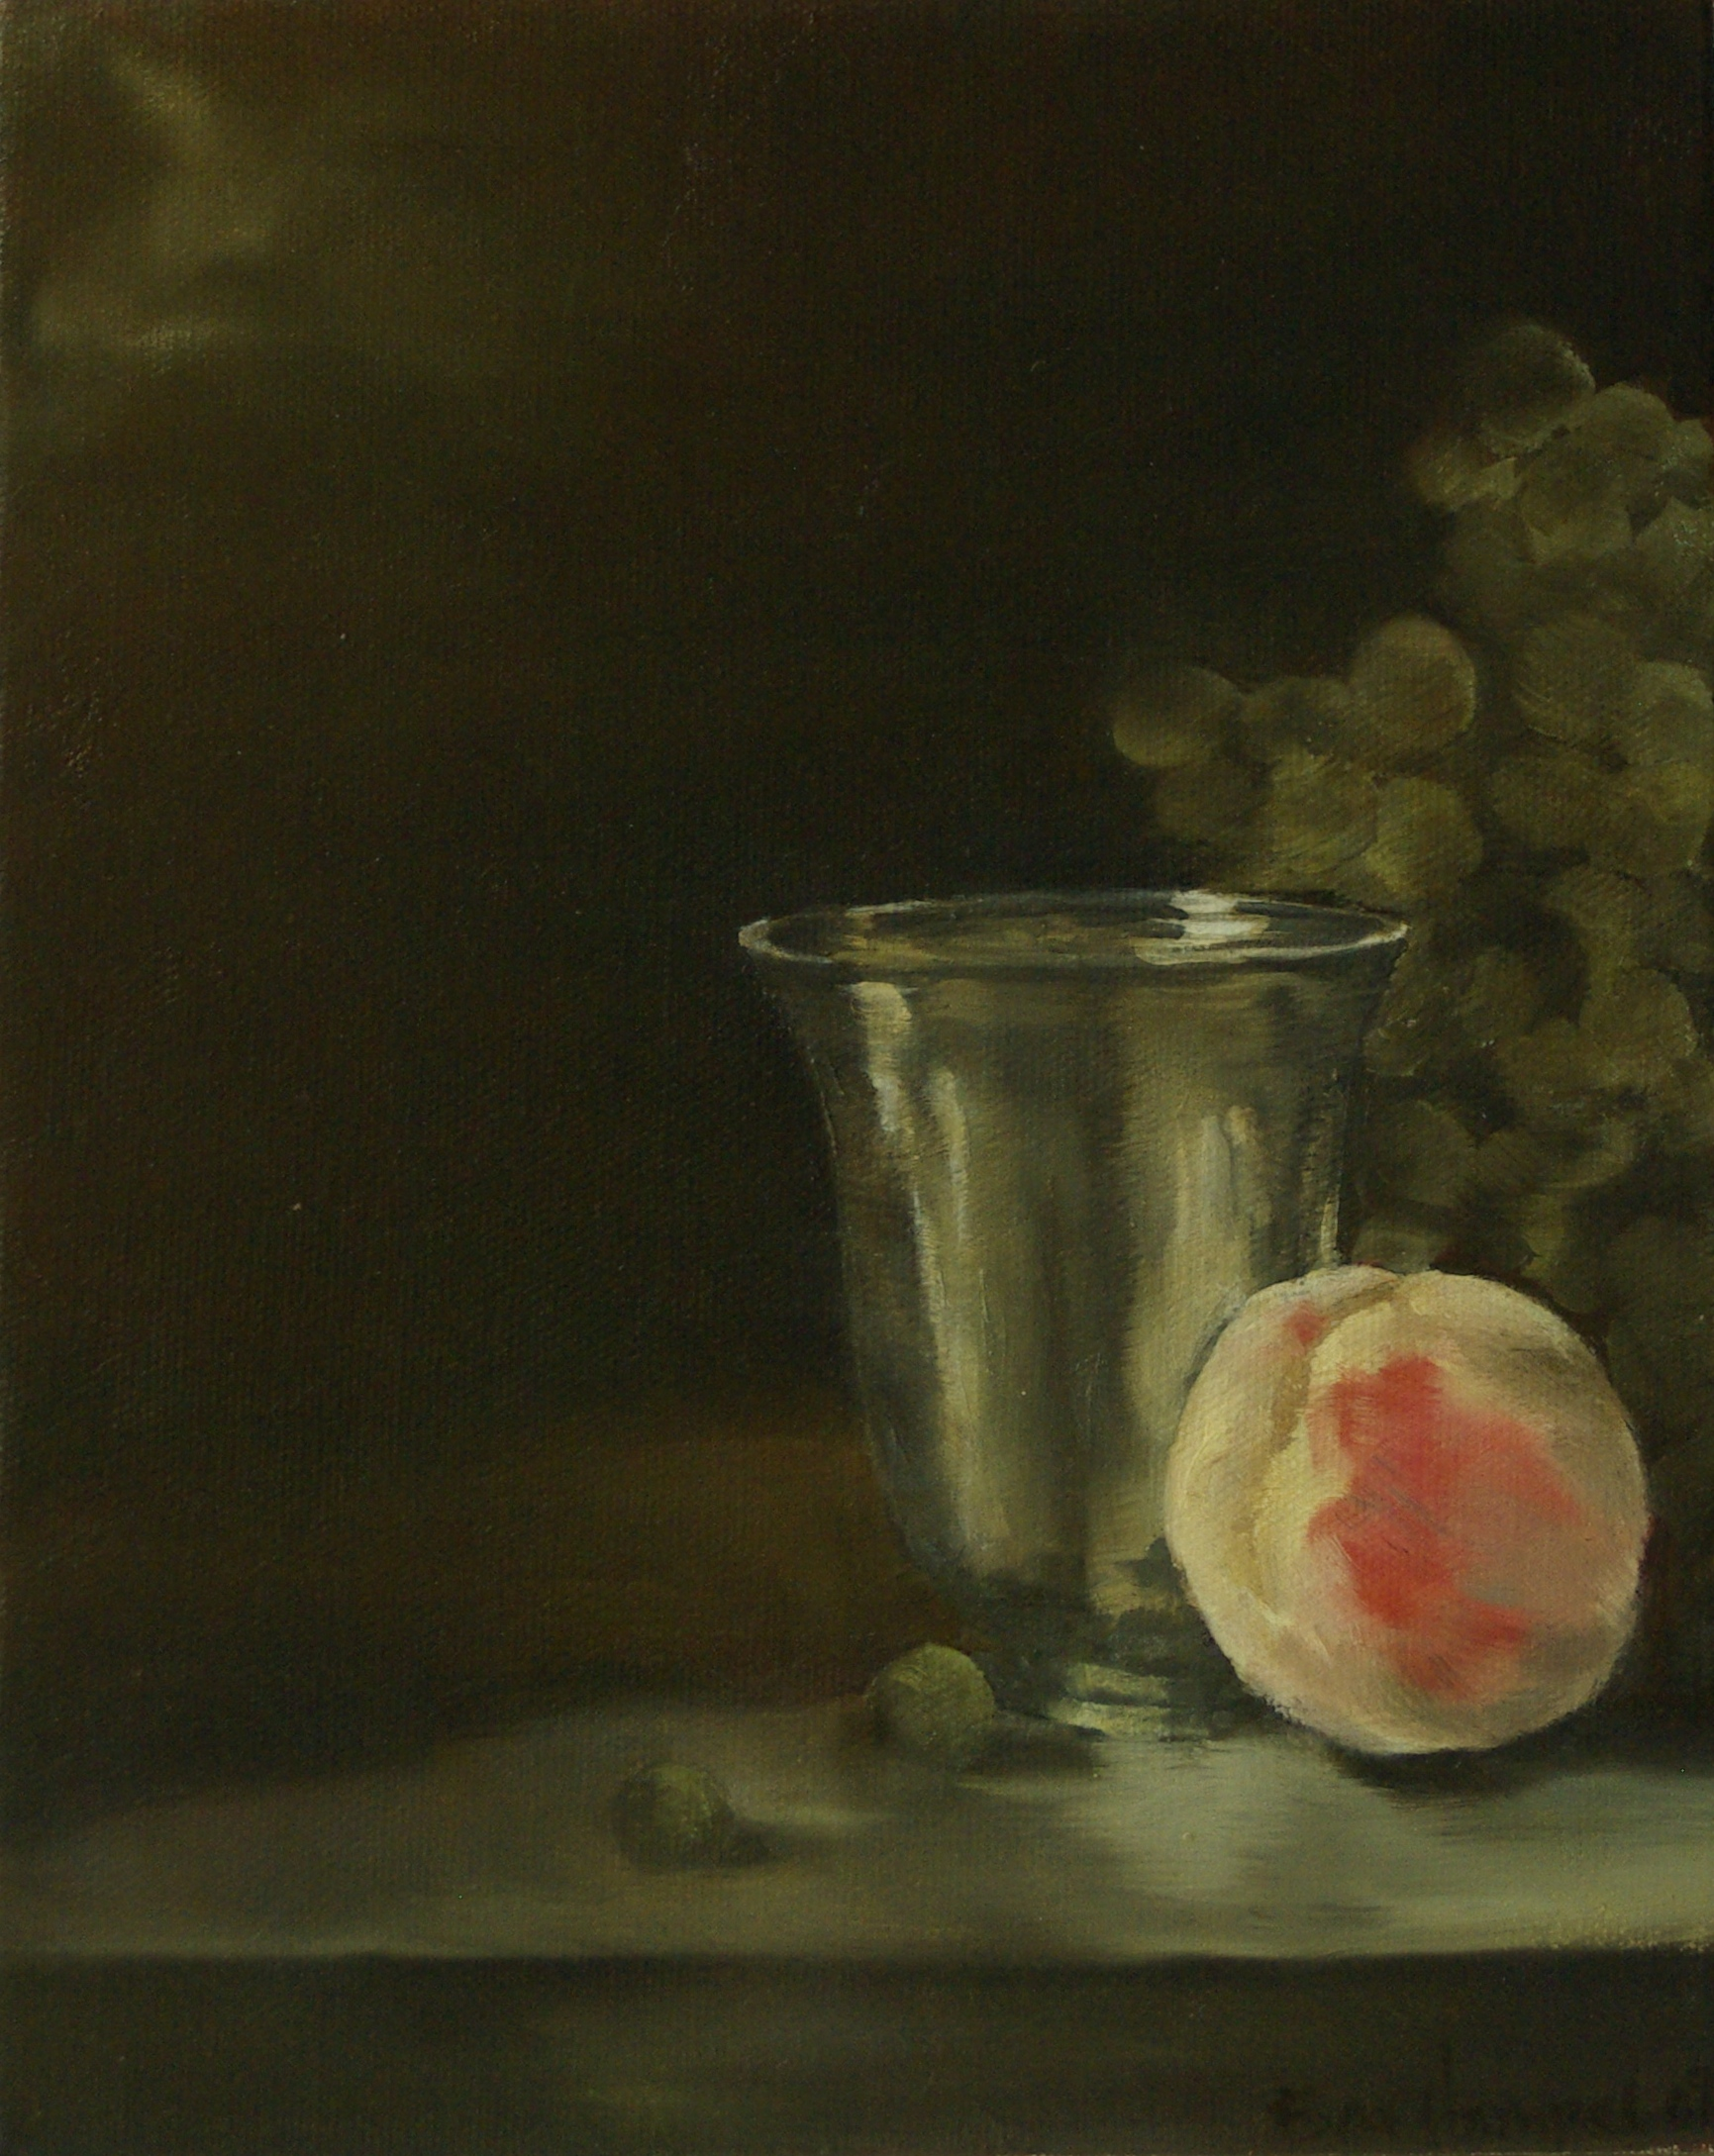 Love Poem - After Chardin 2009